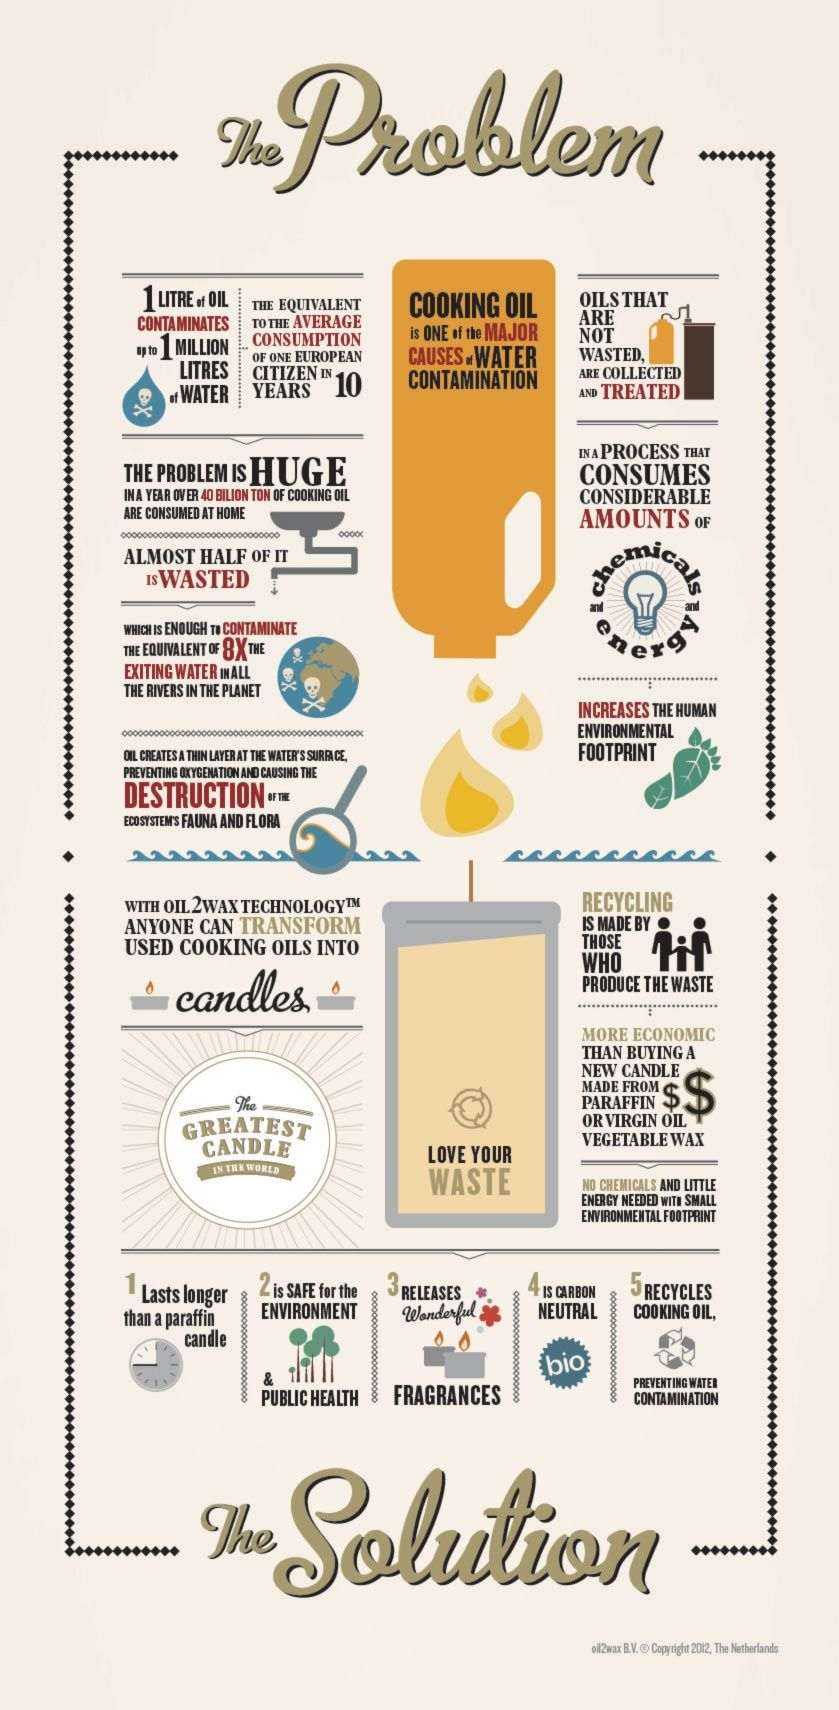 The Ecological Footprint Of Used Cooking Oils And Why The Greatest Candle Is A Wonderful Solution